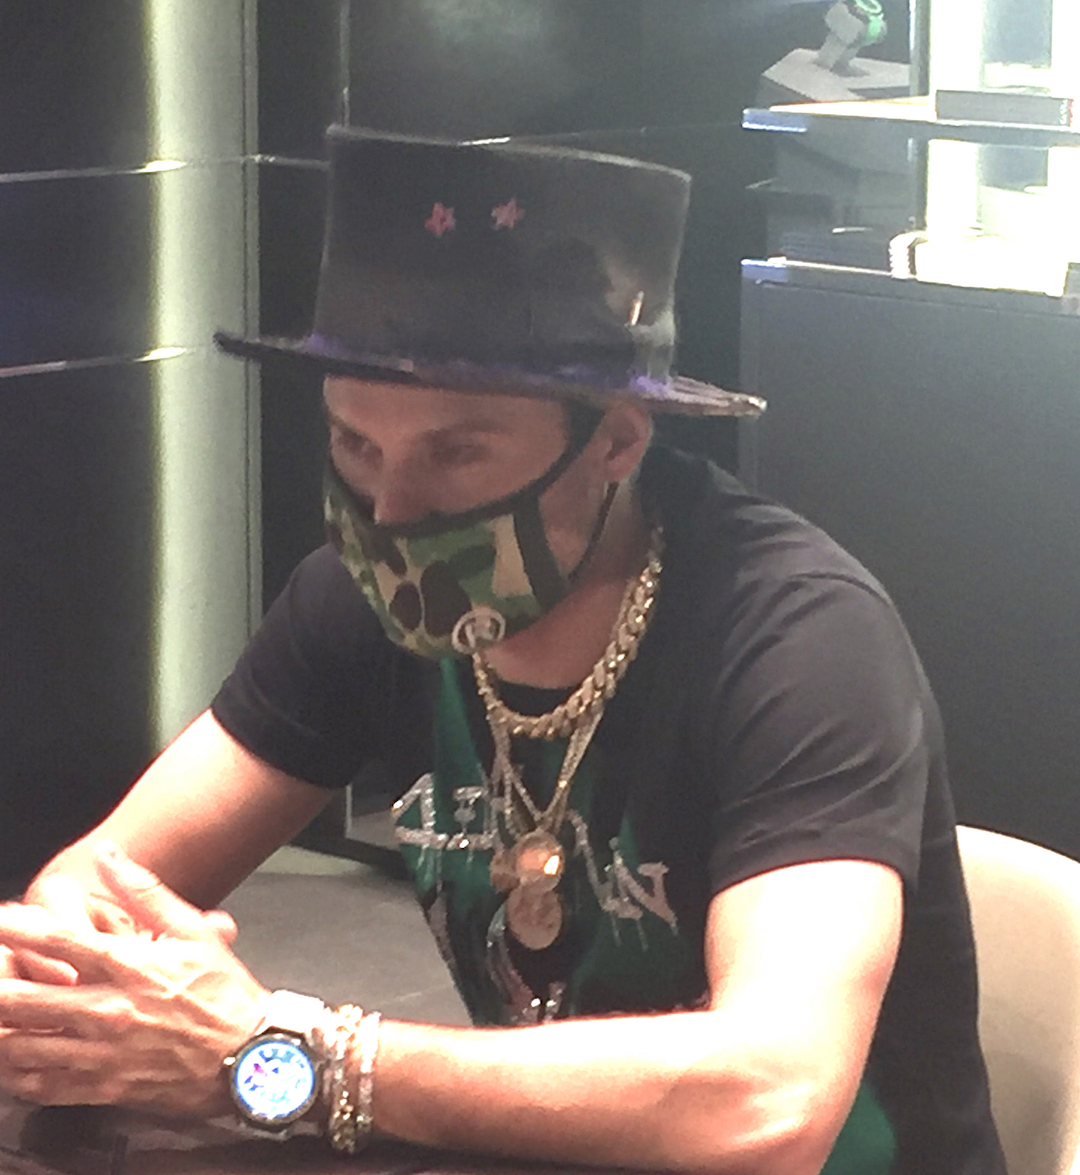 Alec Monopoly is a brand ambassador (Artist provocateur) for TAG Heuer.